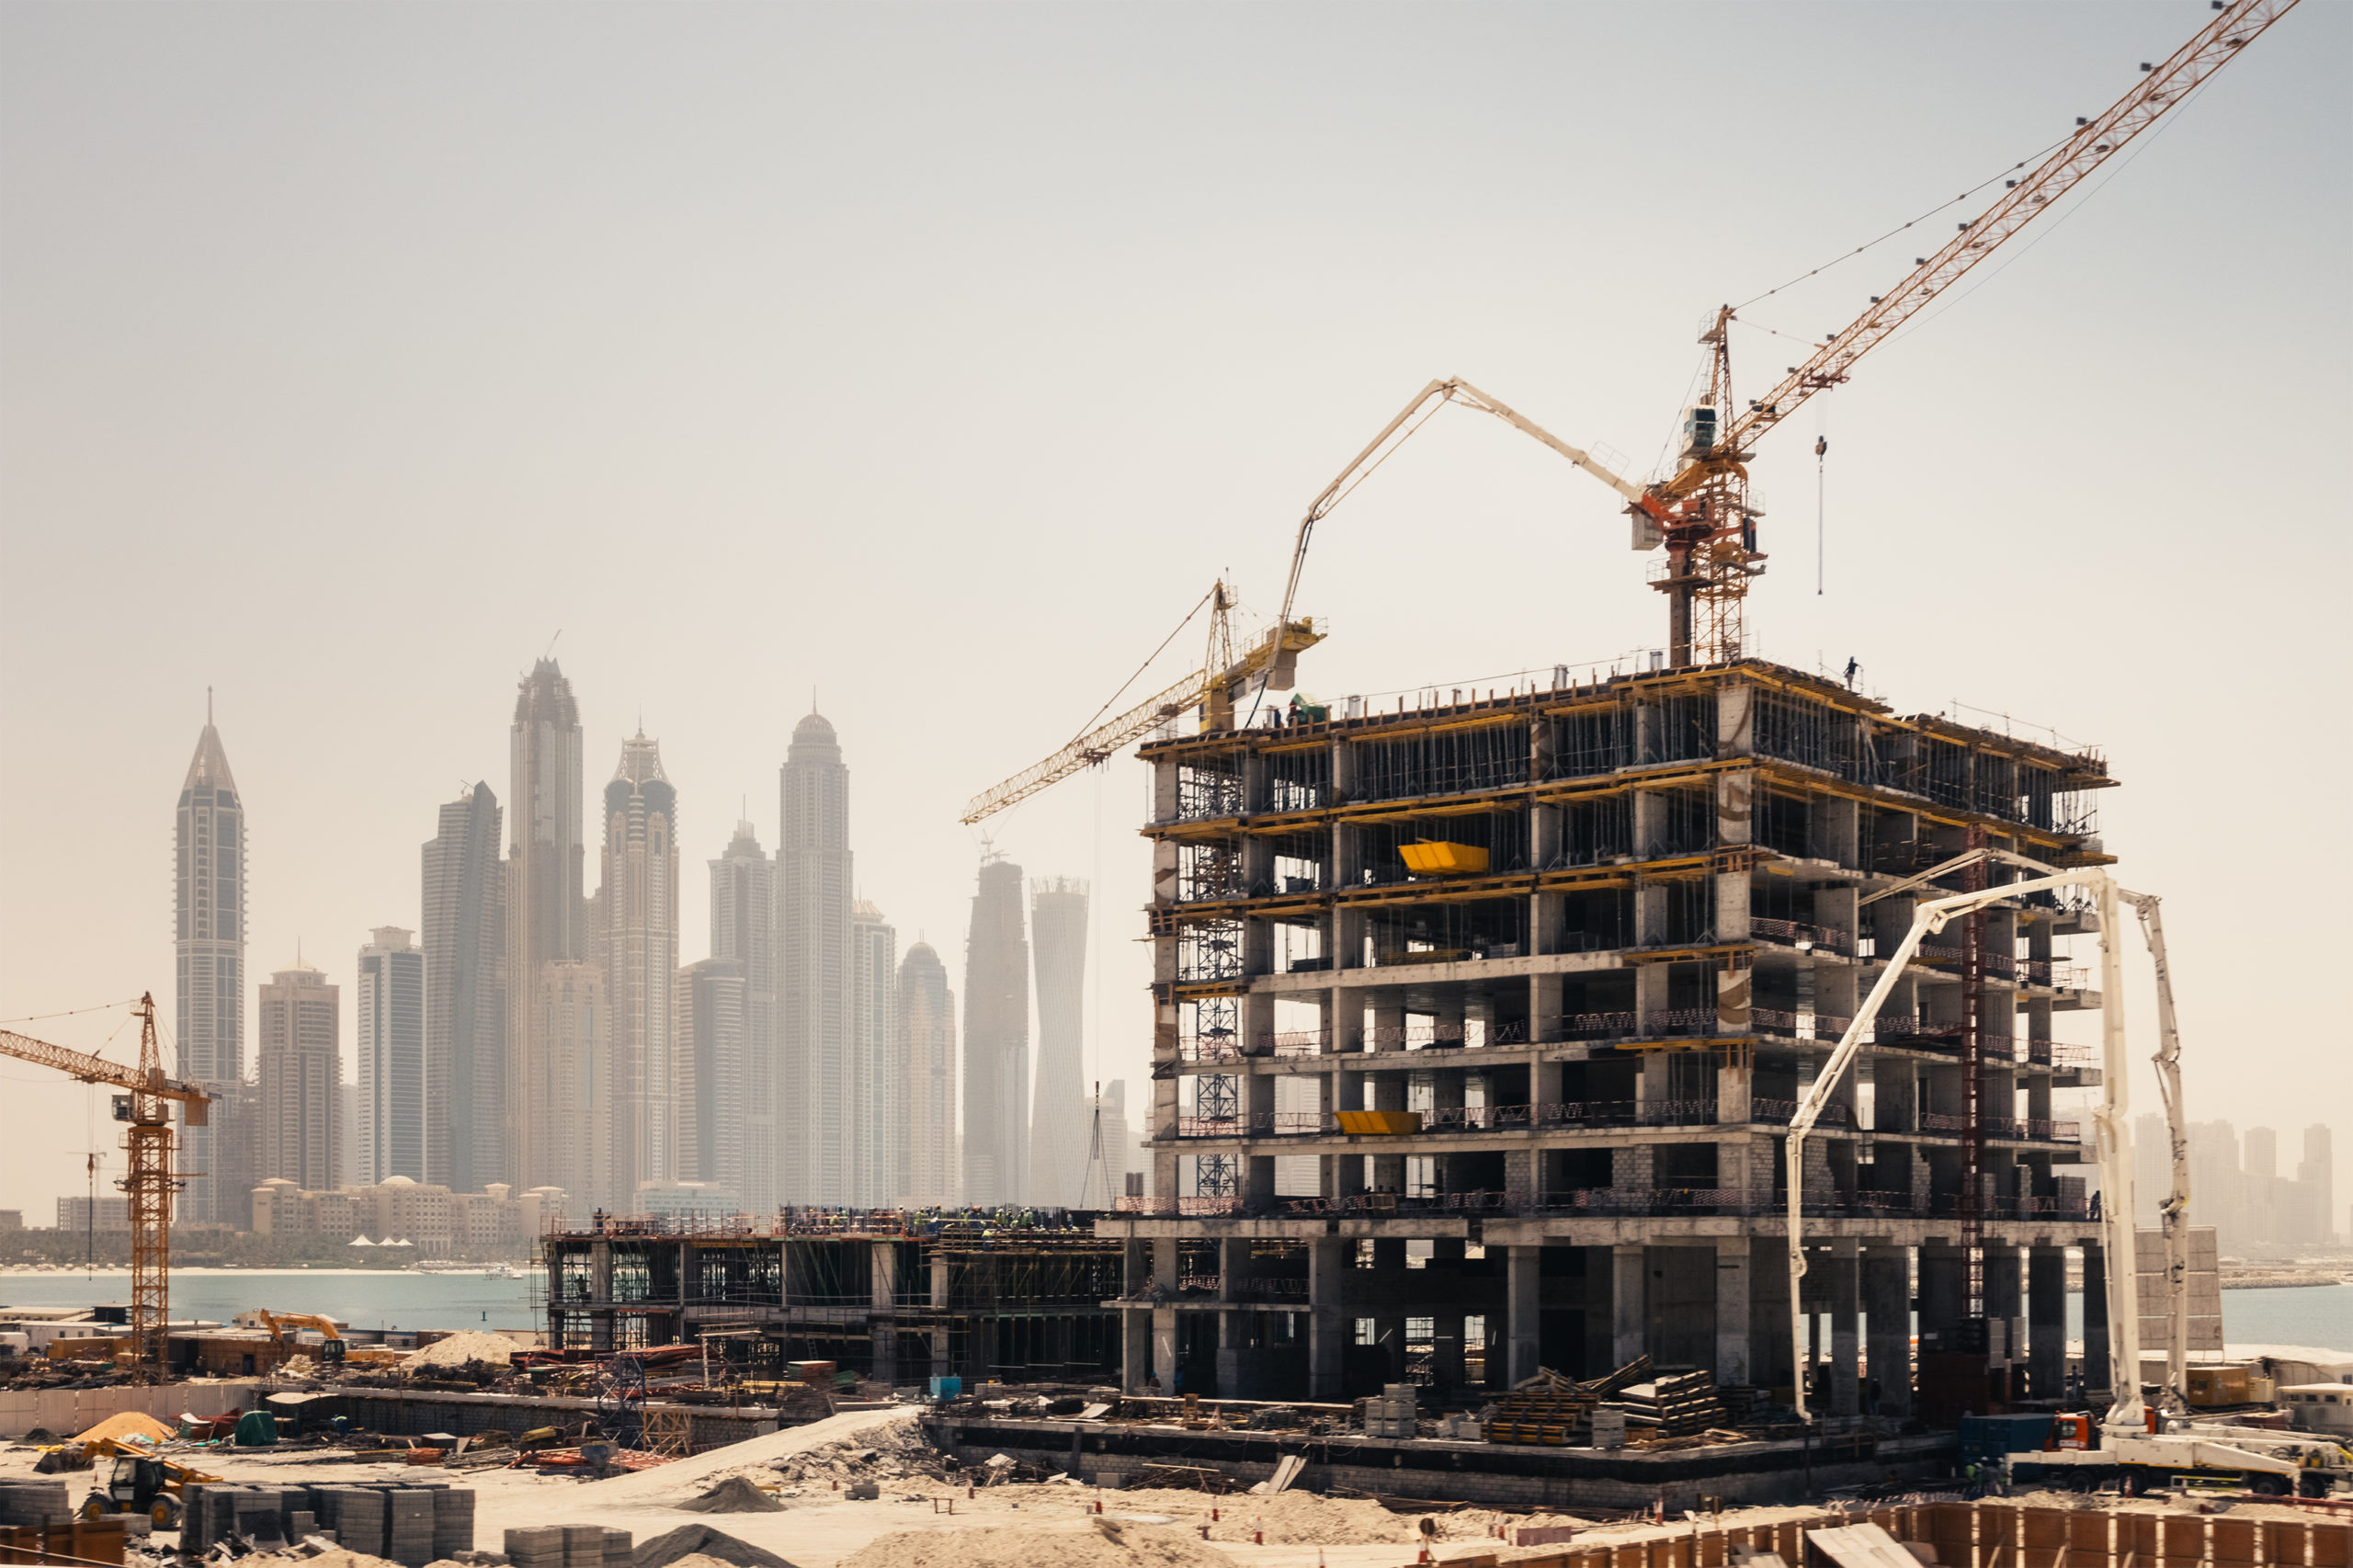 Modern slavery investor group to target construction sector